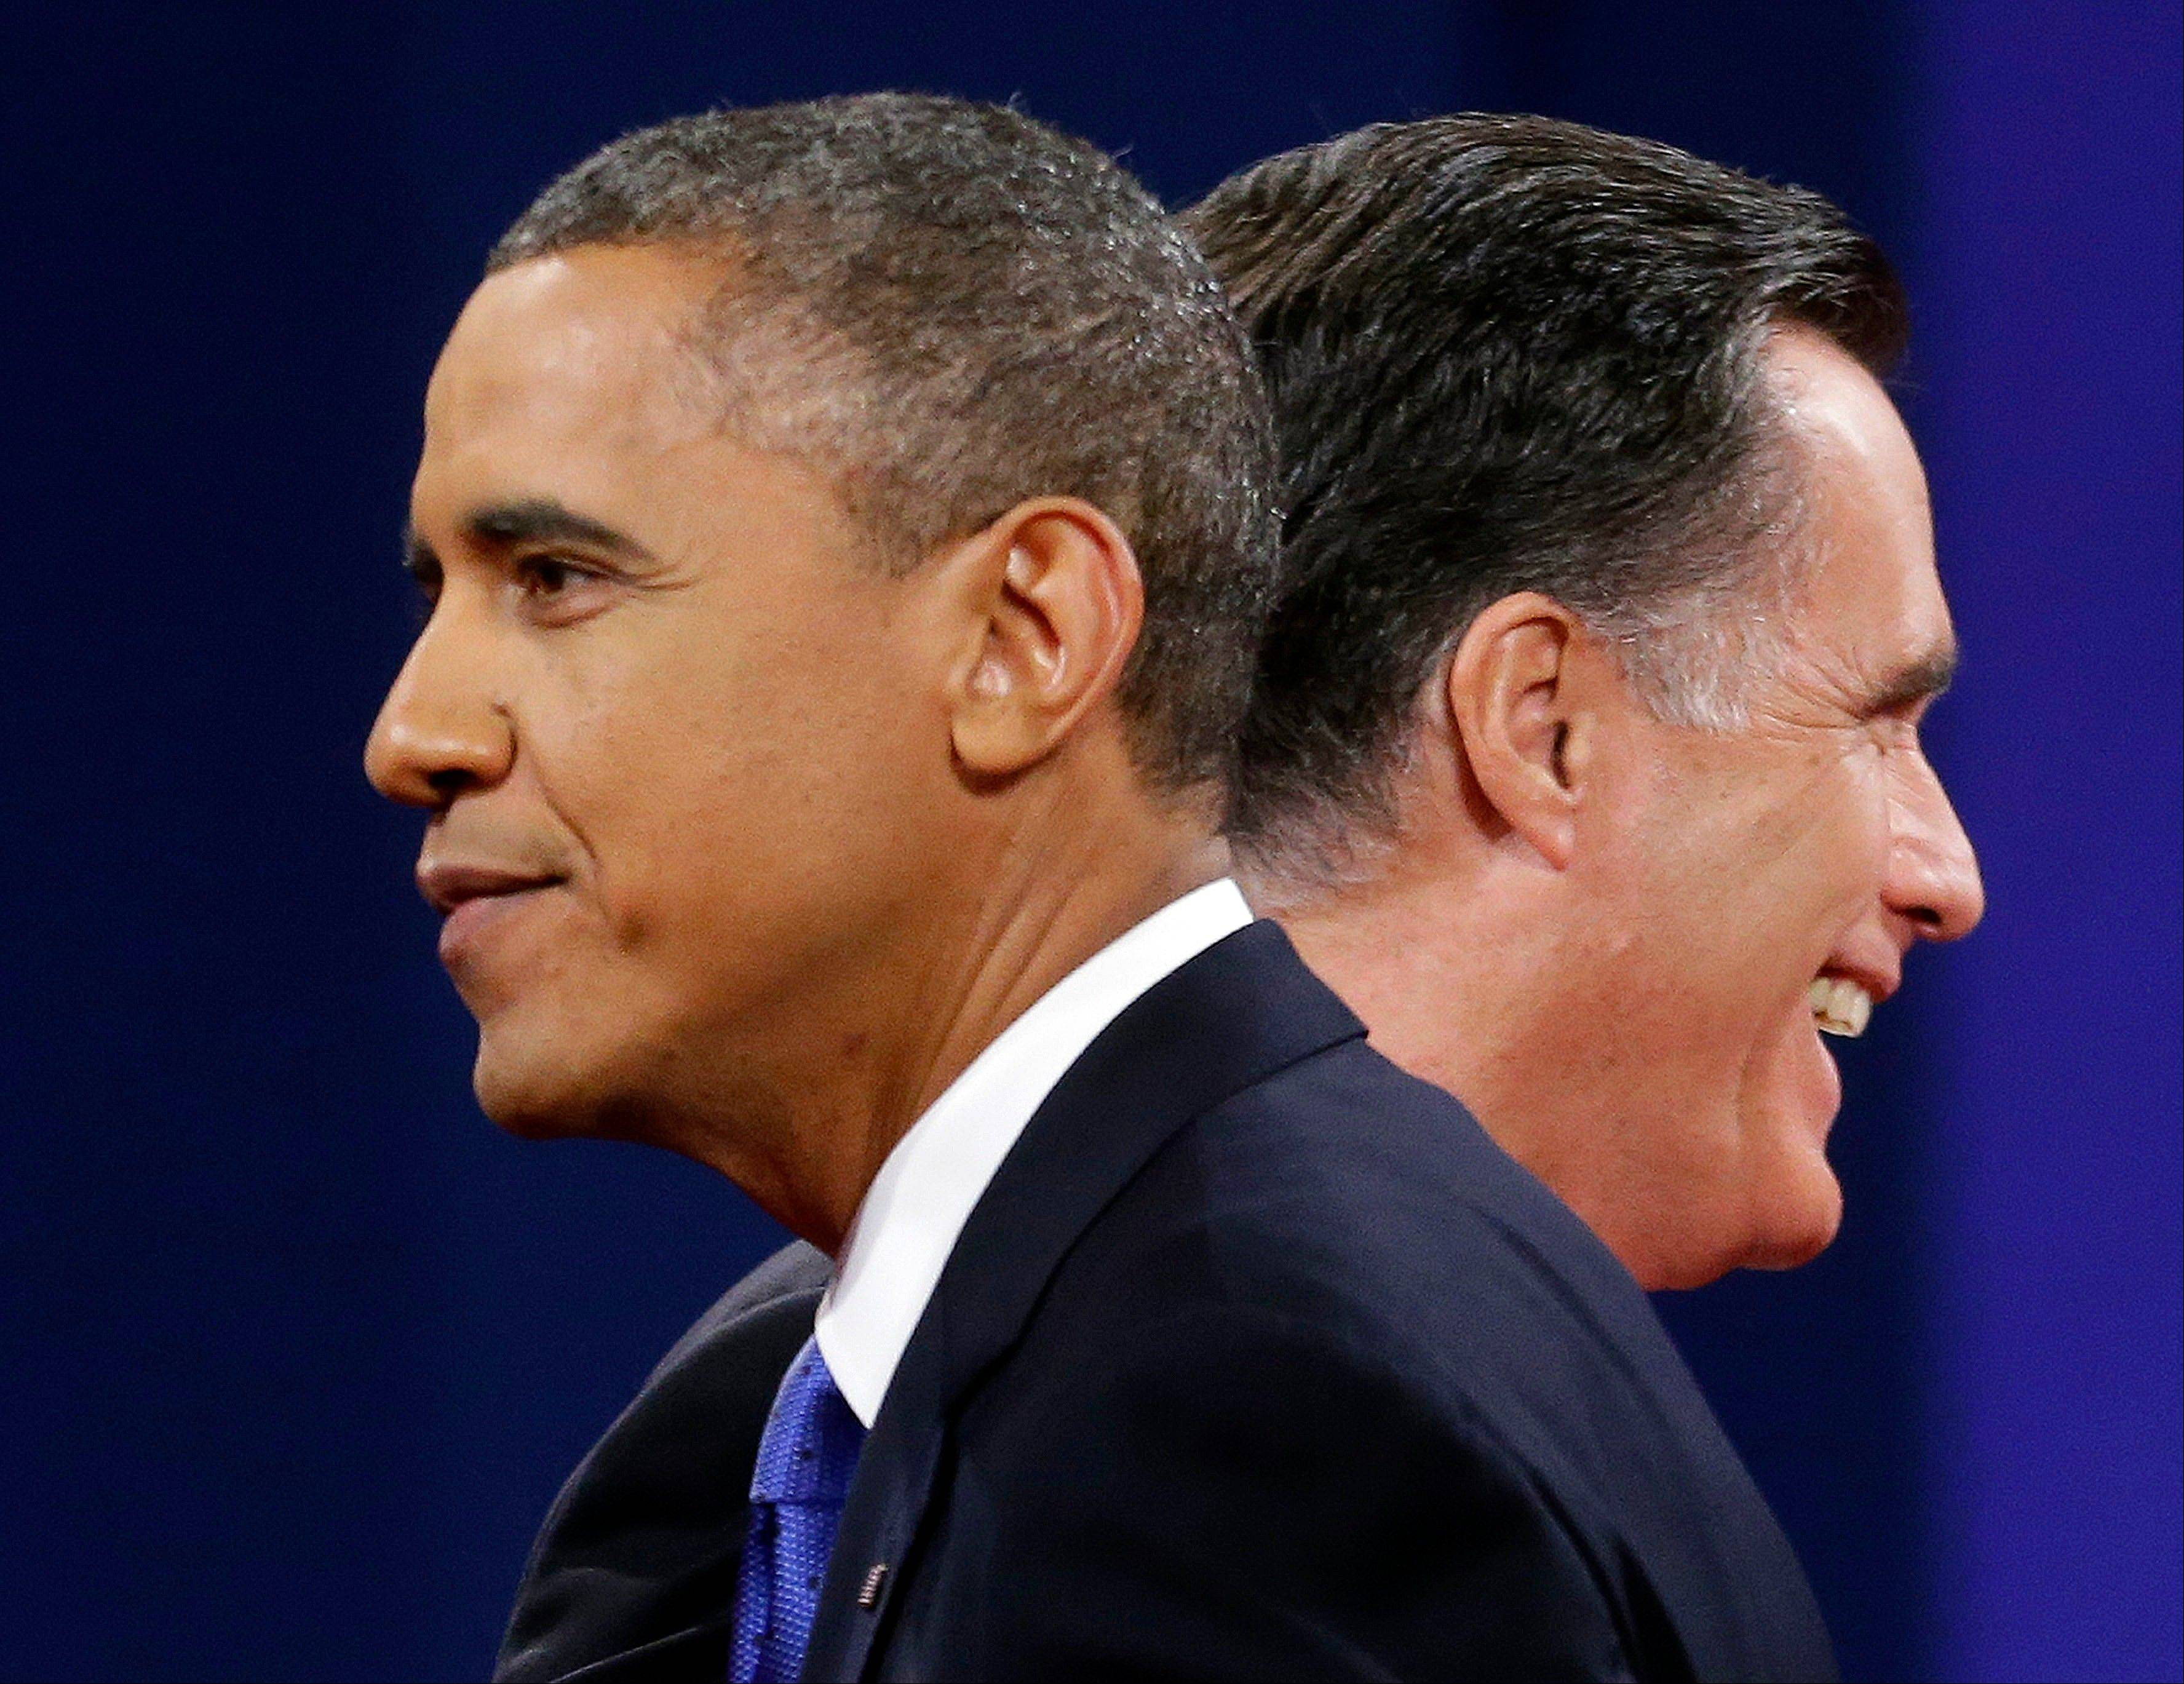 Republican presidential candidate, former Massachusetts Gov. Mitt Romney and President Barack Obama walks past each other onstage at the end of the last debate at Lynn University, Monday, Oct. 22, 2012, in Boca Raton, Fla.